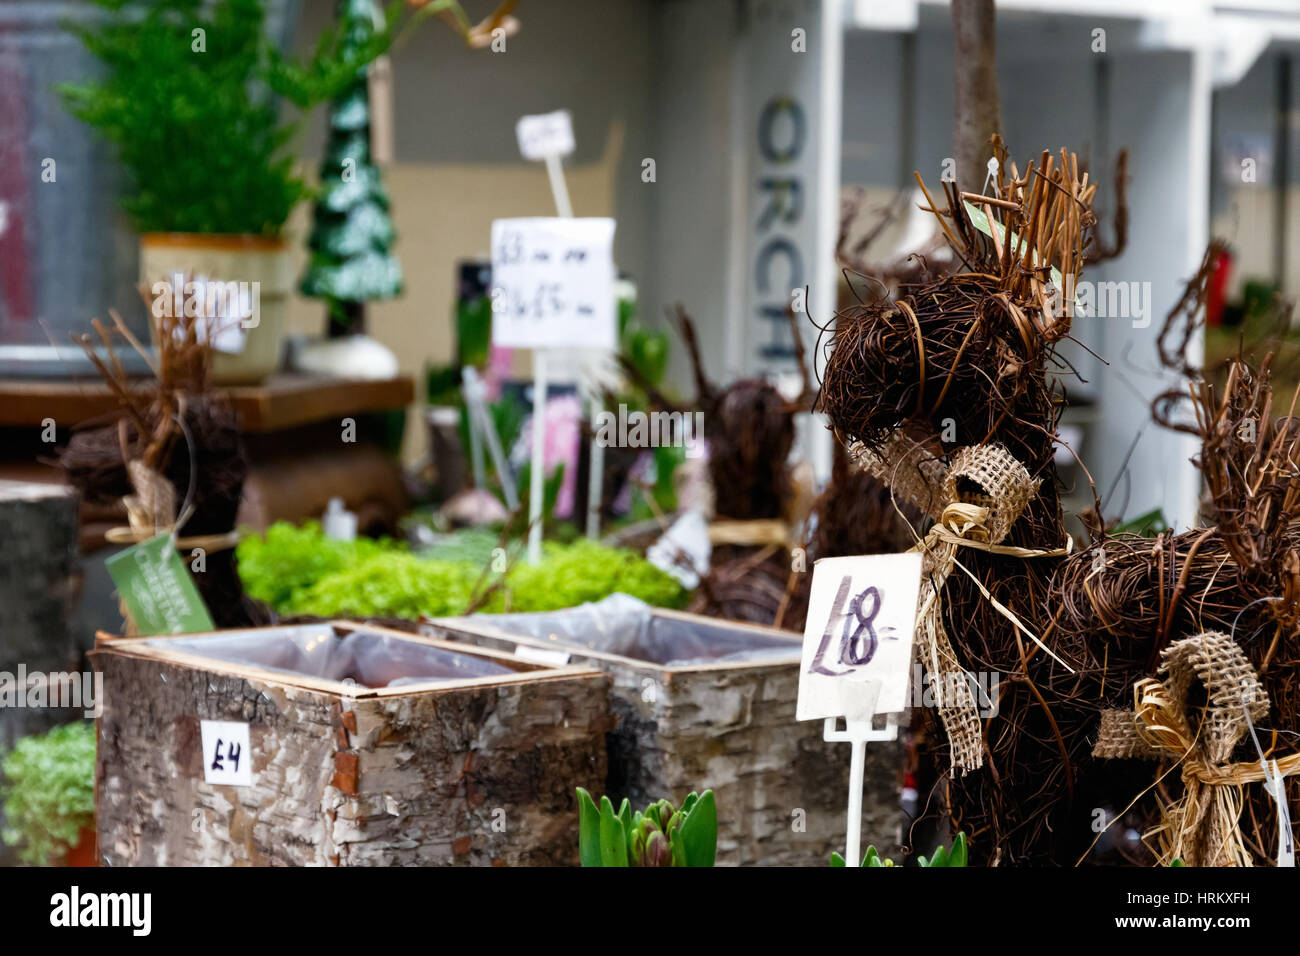 Garden ornament on display at Borough Market in London - Stock Image